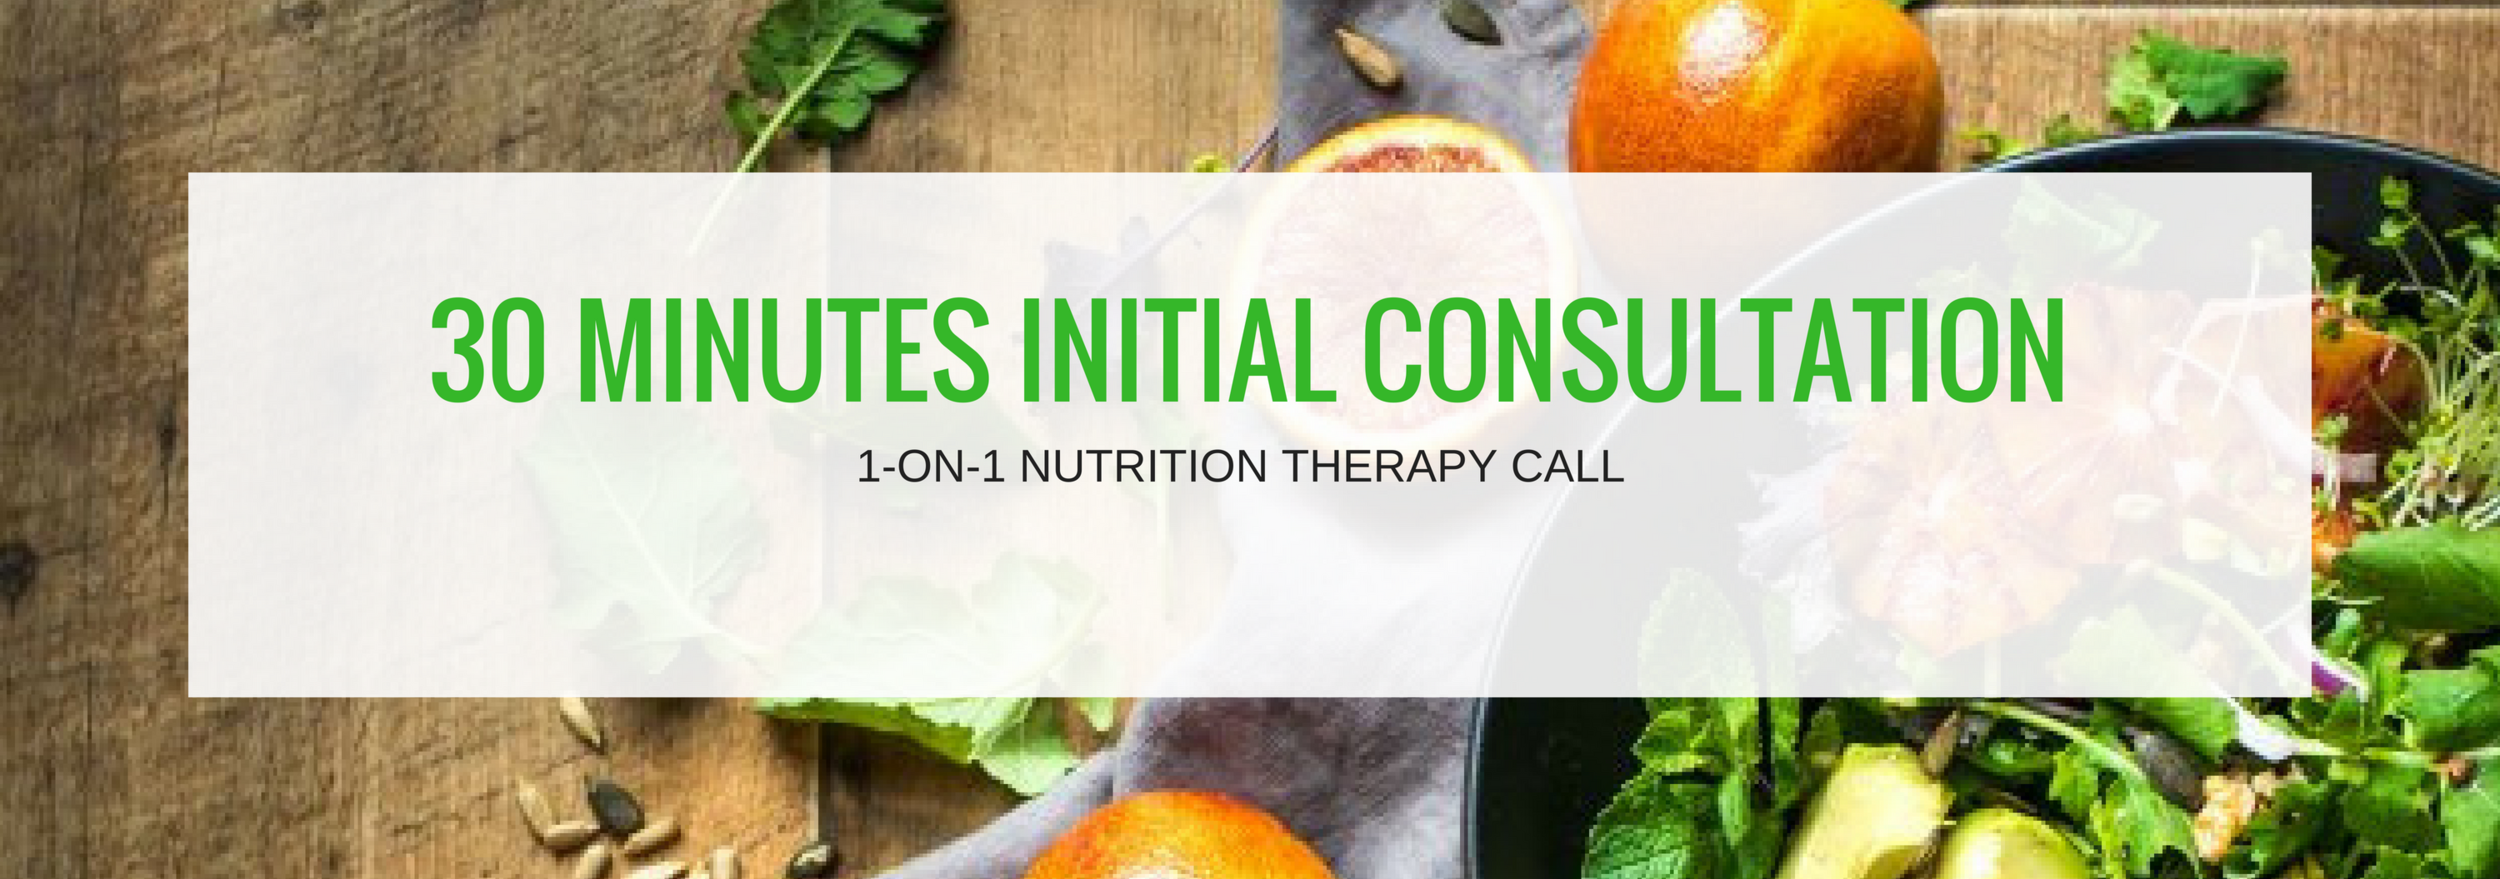 Copy of nutrition therapy banner 3-2.png